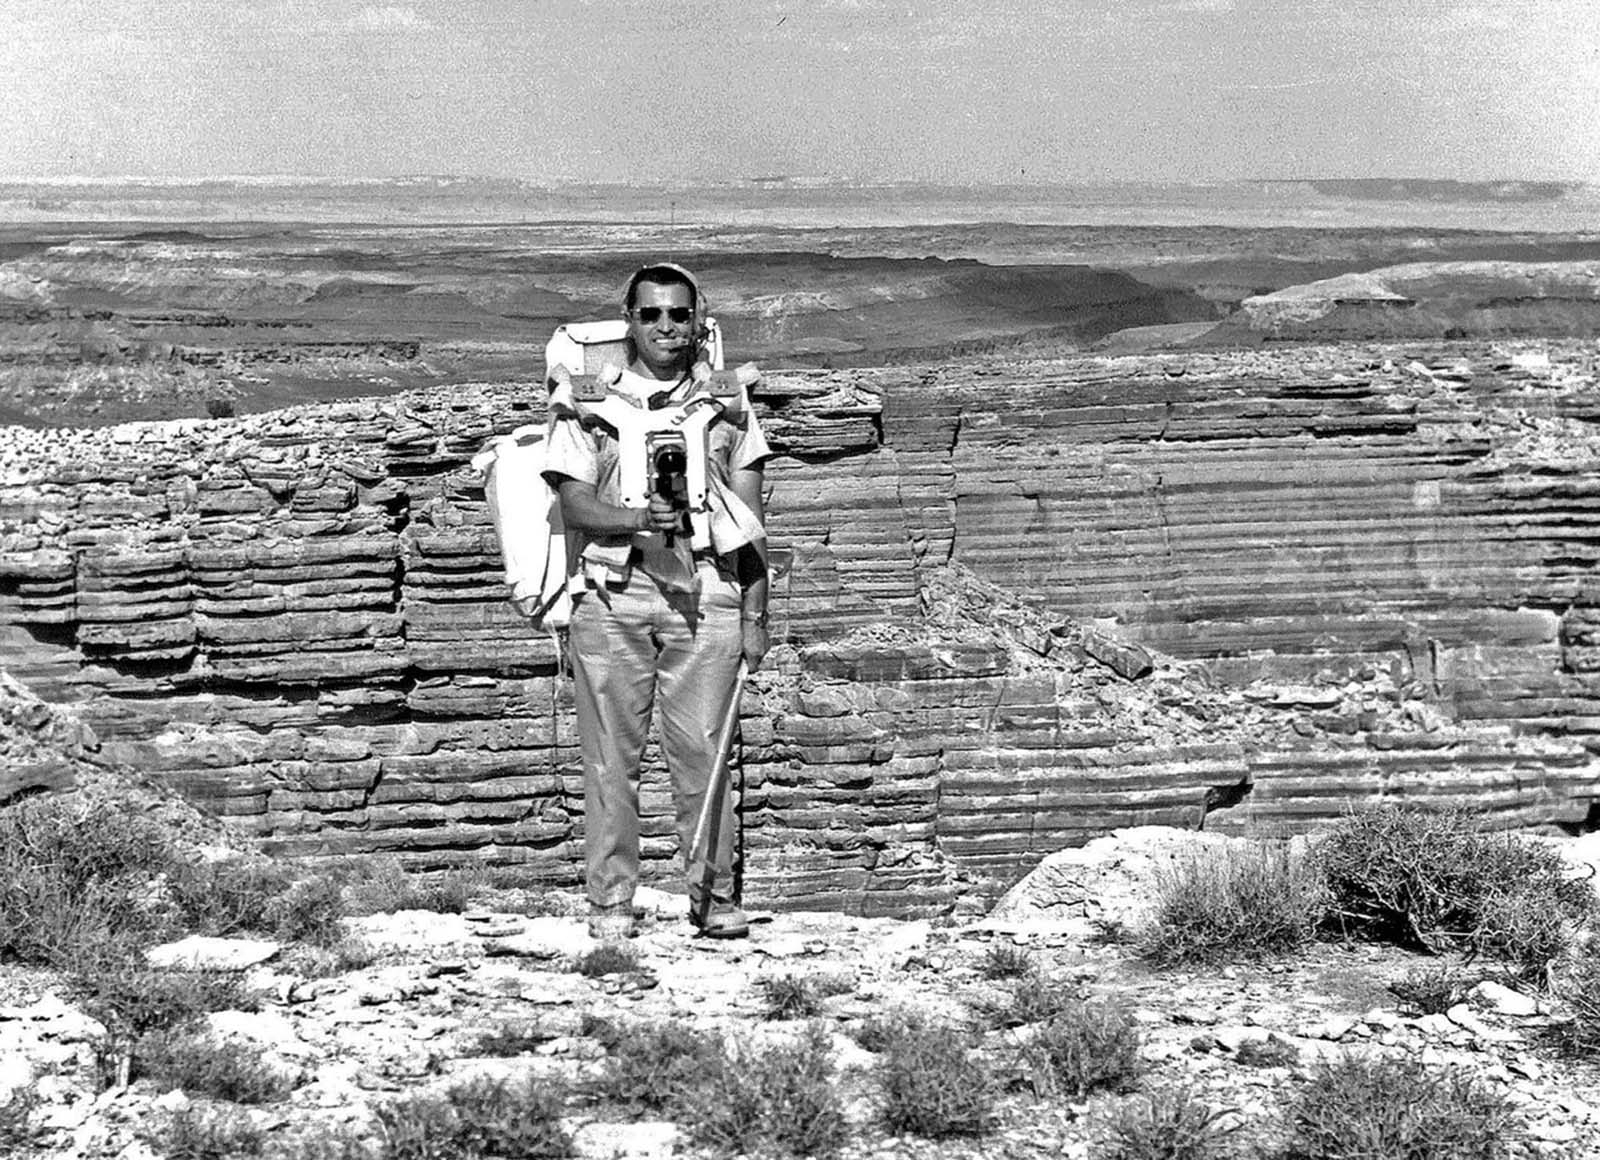 The Apollo 17 astronaut Harrison Schmitt stands on the edge of an erosional canyon that was used to simulate the large Hadley Rille at the Apollo 15 landing site. Schmitt was originally part of the Apollo 15 backup crew, and later slated to fly in Apollo 18. When that mission was canceled, Schmitt was moved up to Apollo 17 due to his previous work and studies as a professional geologist.